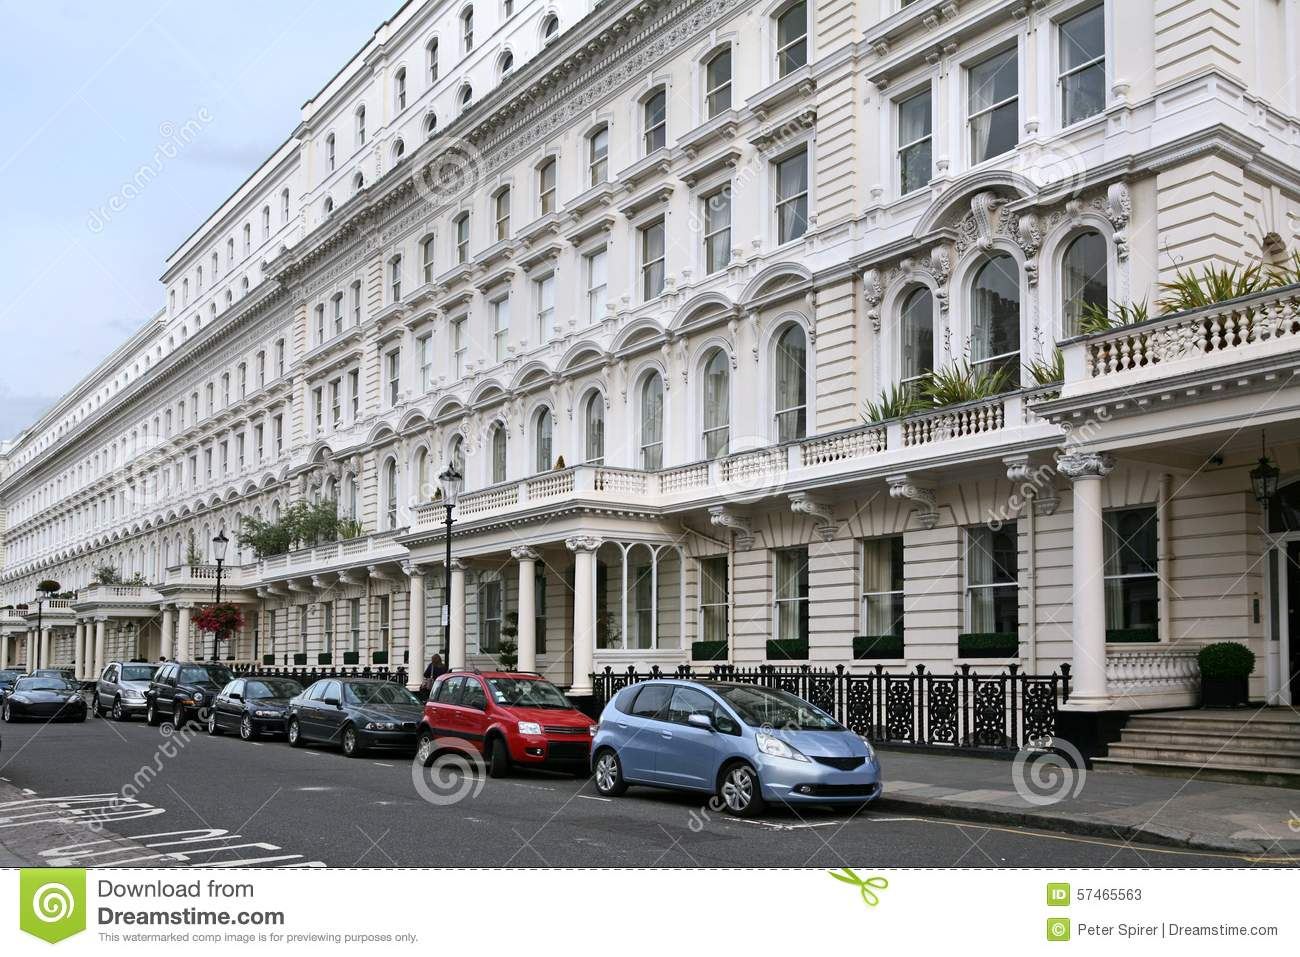 London Street Apartment Buildings Stock Image - Image: 57465563